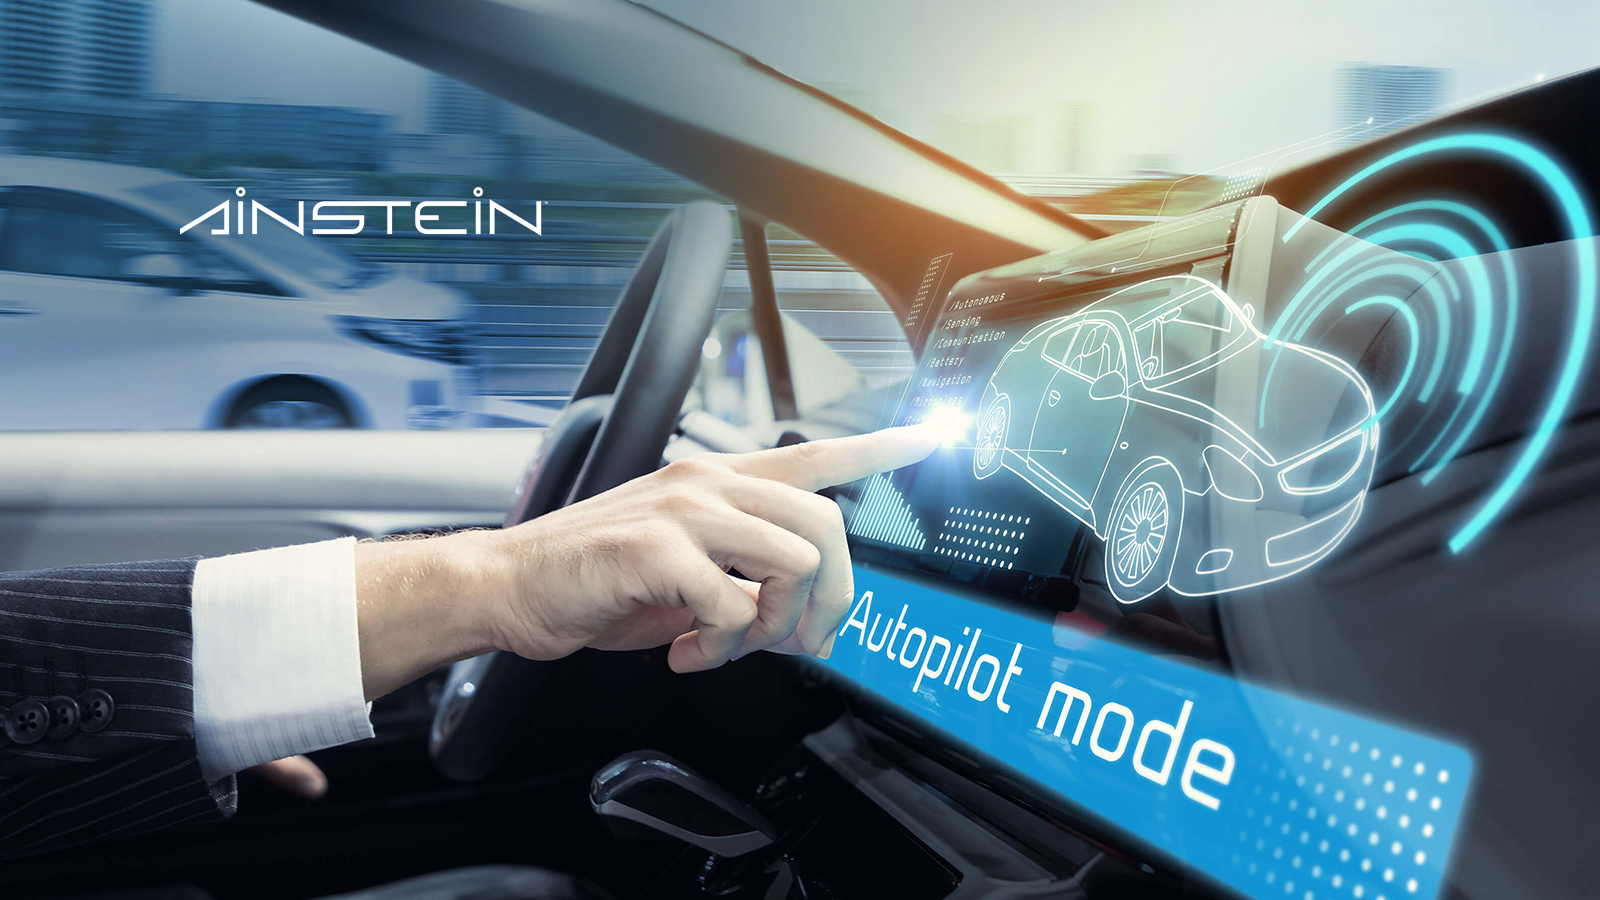 Ainstein Announces Full Support for Customizable Building Automation